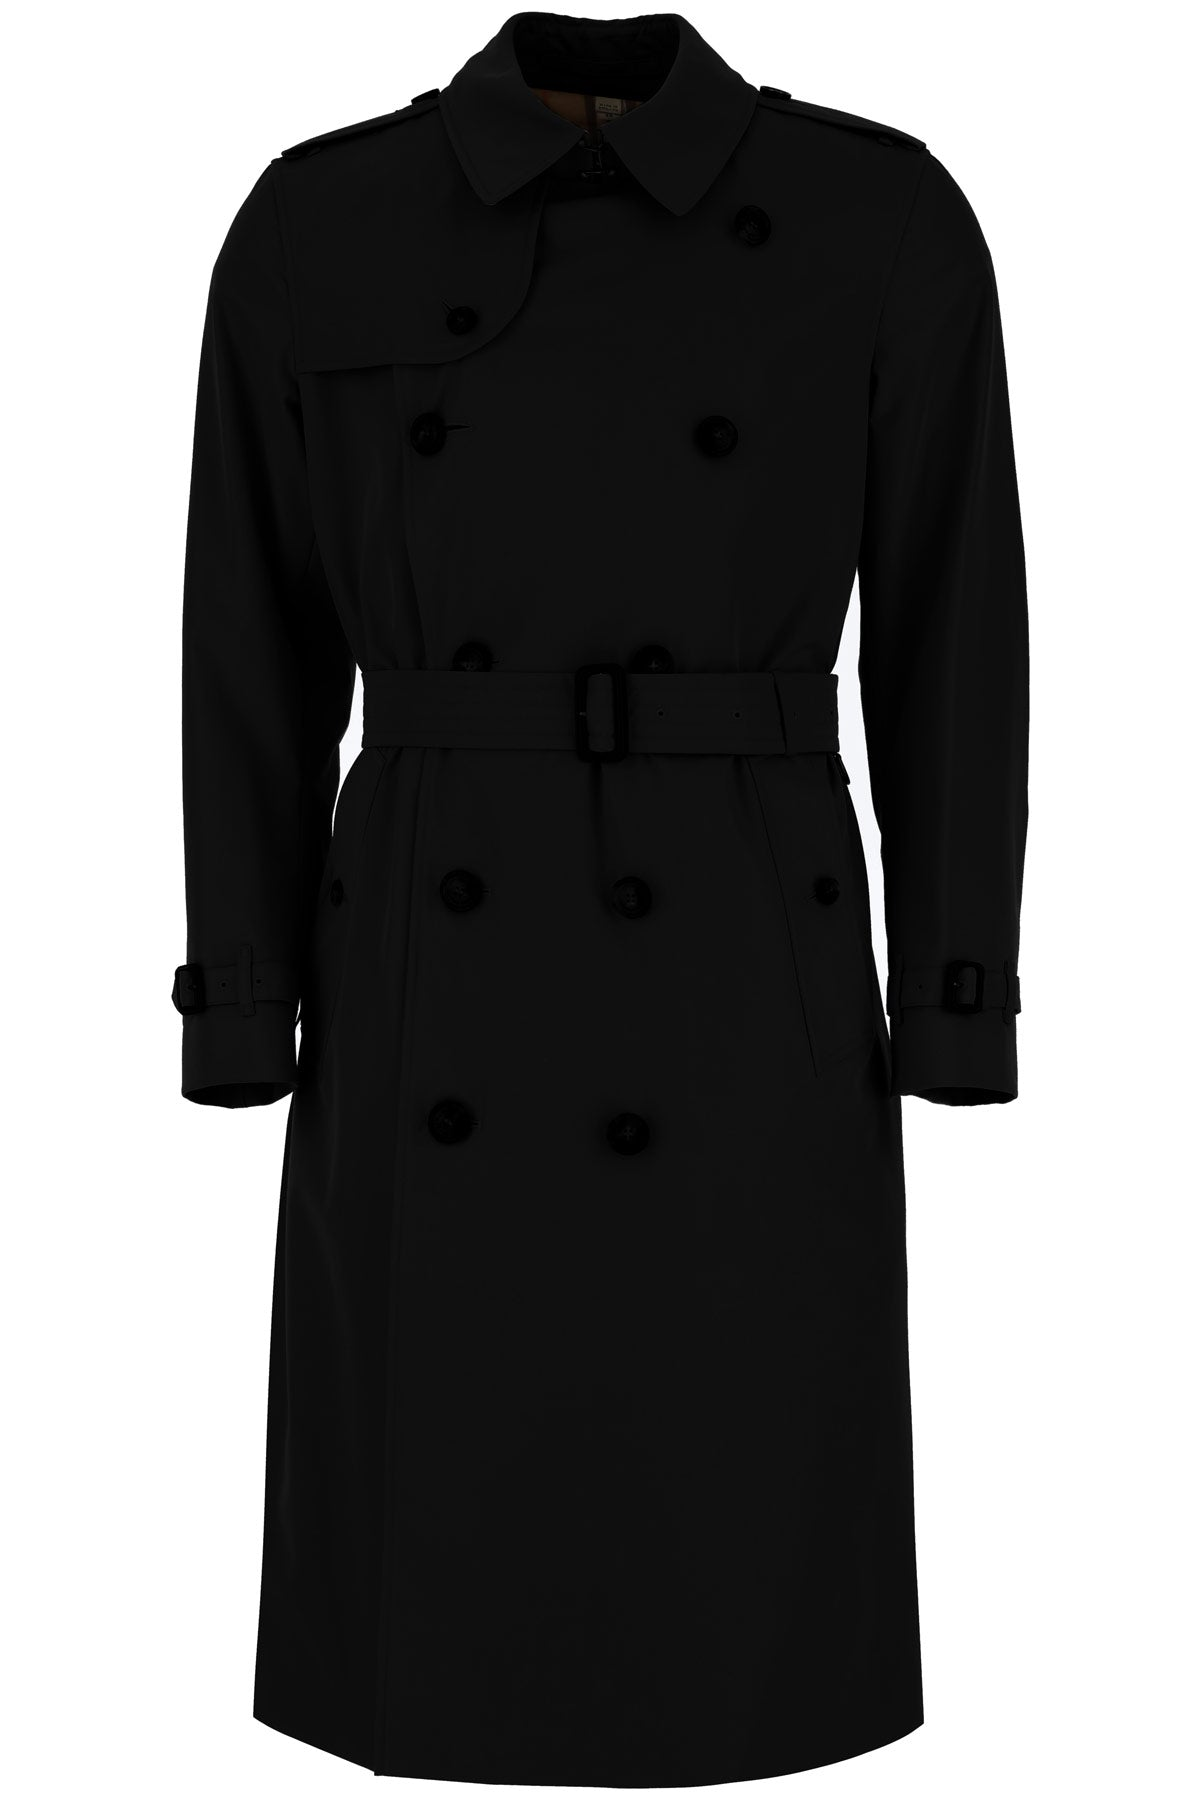 Burberry Cottons BURBERRY WESTMINSTER HERITAGE TRENCH COAT